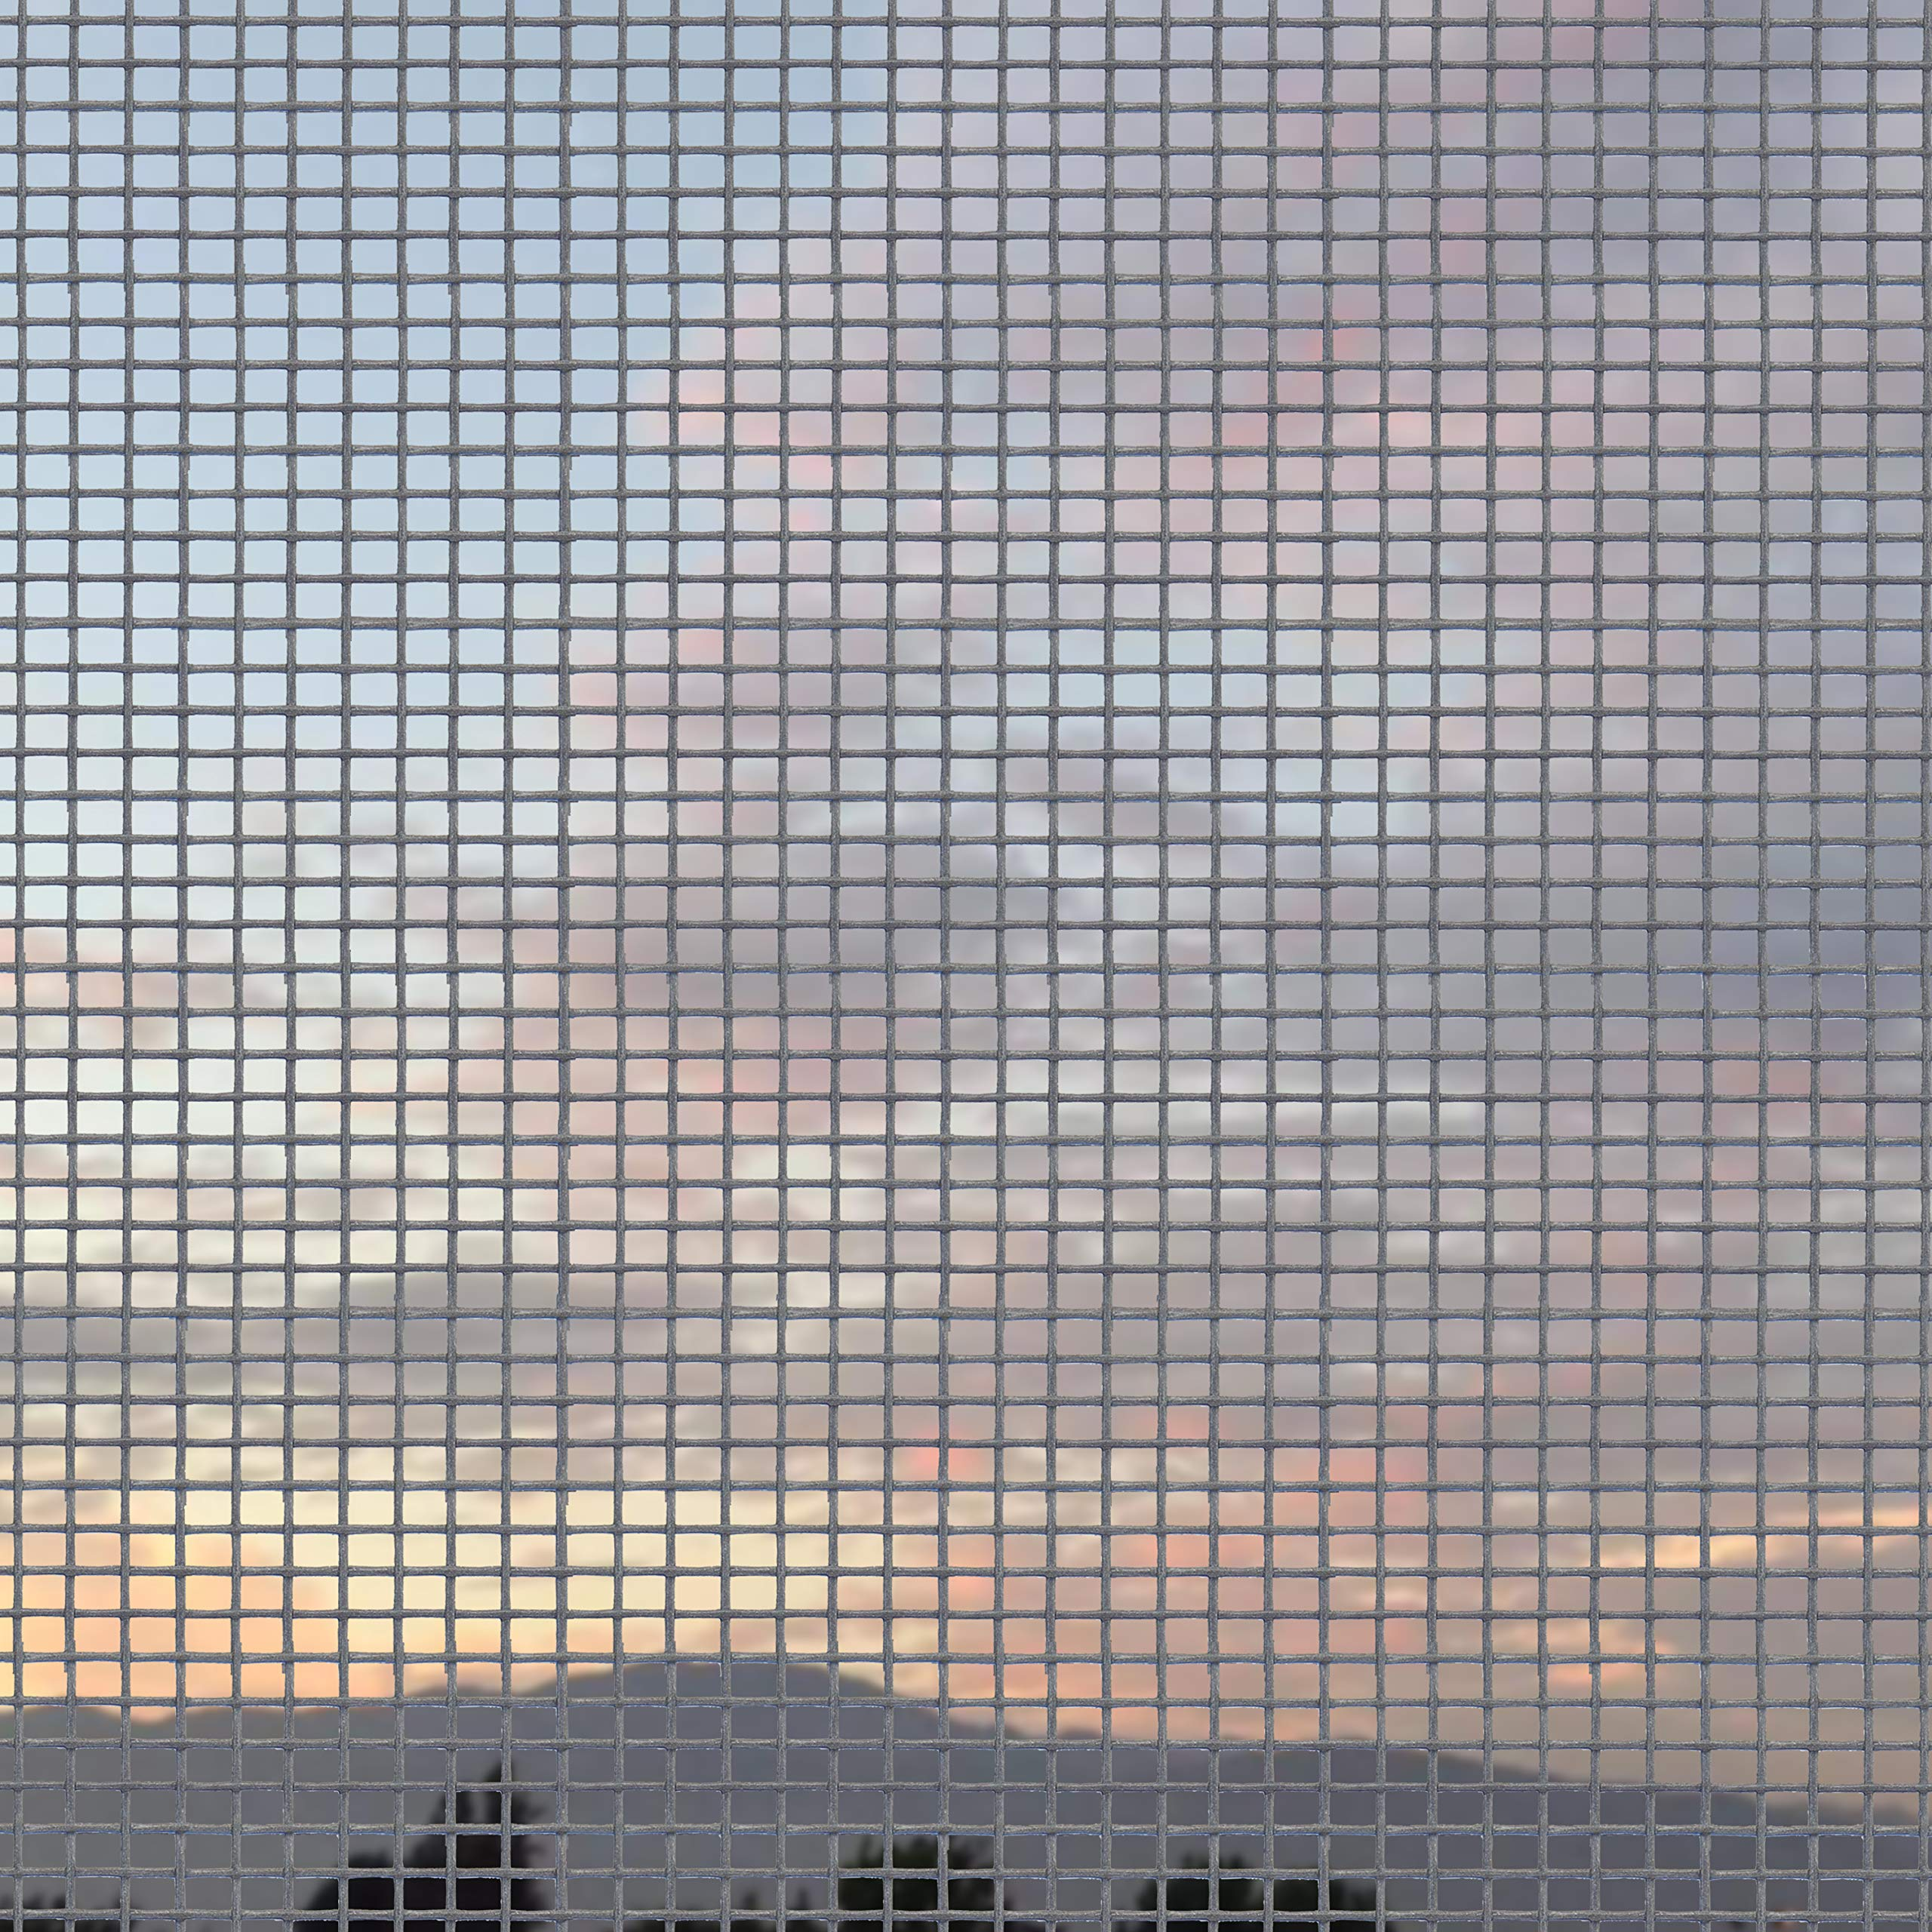 Window Screen Mesh Roll 36in x 100ft – Fiberglass Screen Replacement Mesh for DIY Projects (Grey Mesh) by LAZY DOG WAREHOUSE (Image #3)